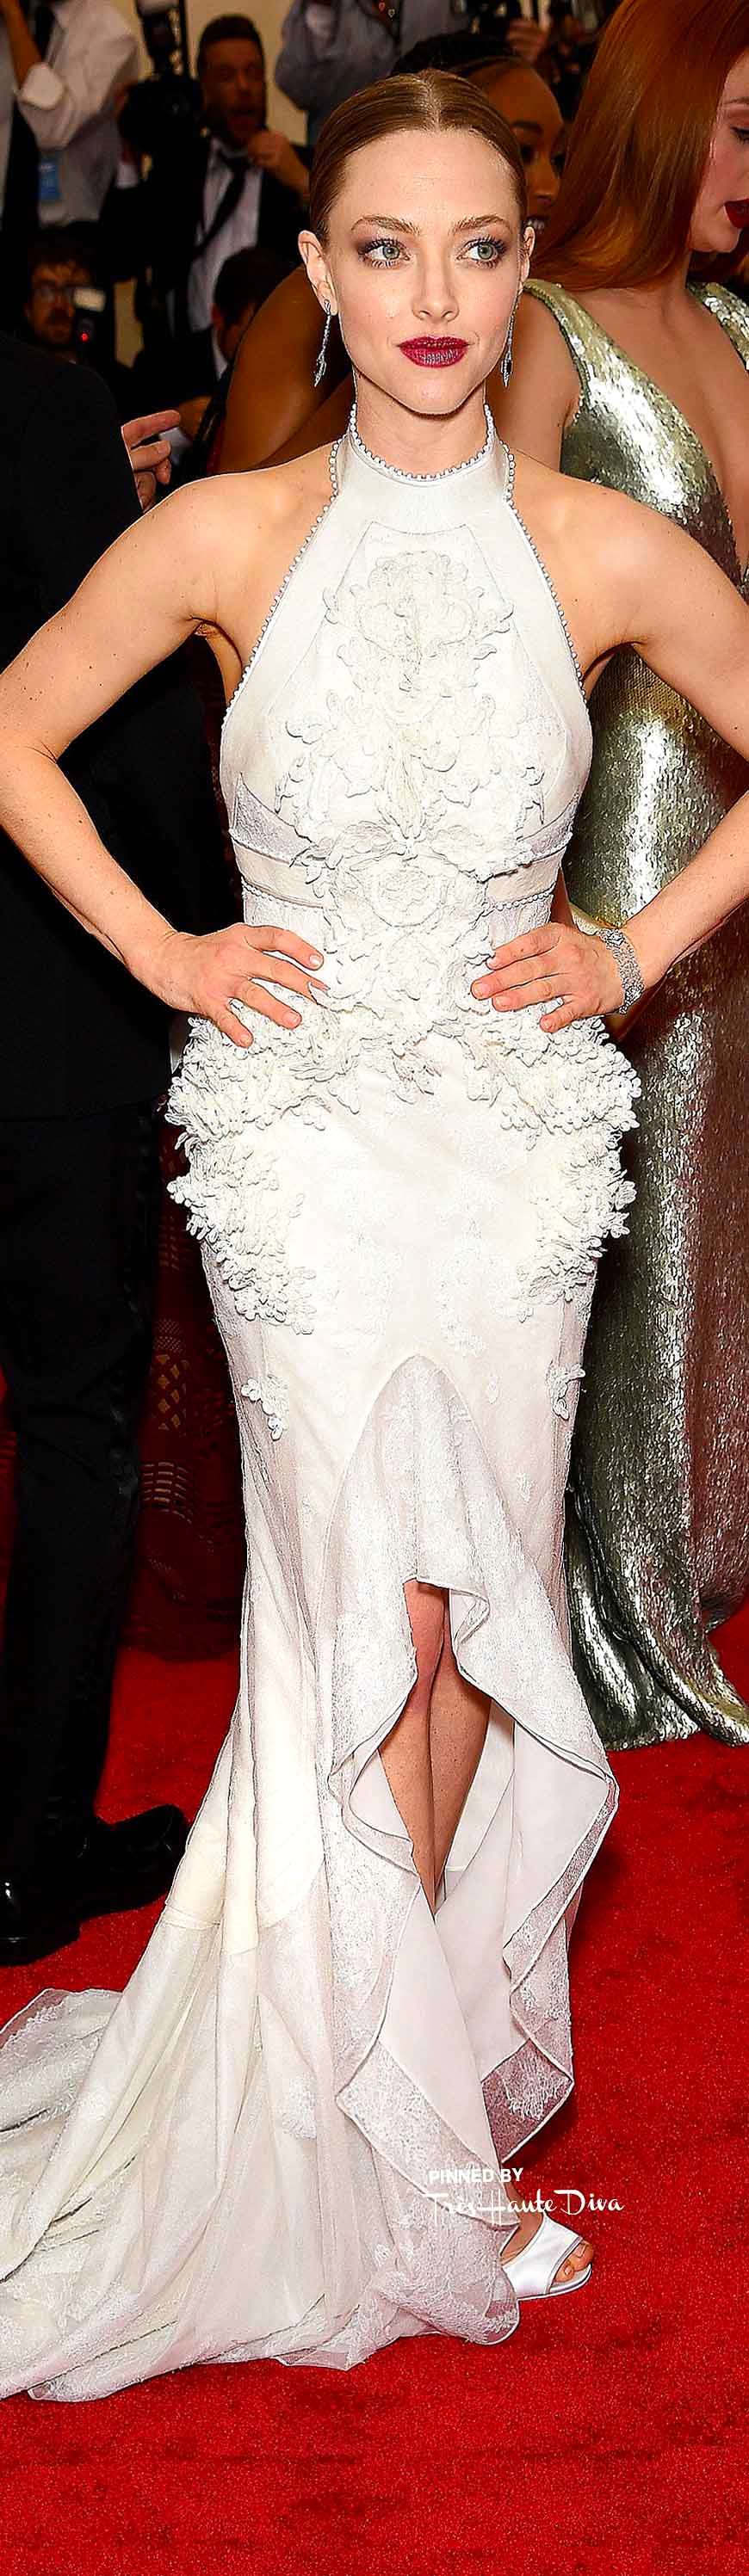 Amanda Seyfried in Givenchy Haute Couture Getty Images/ Dimitrios Kambouris